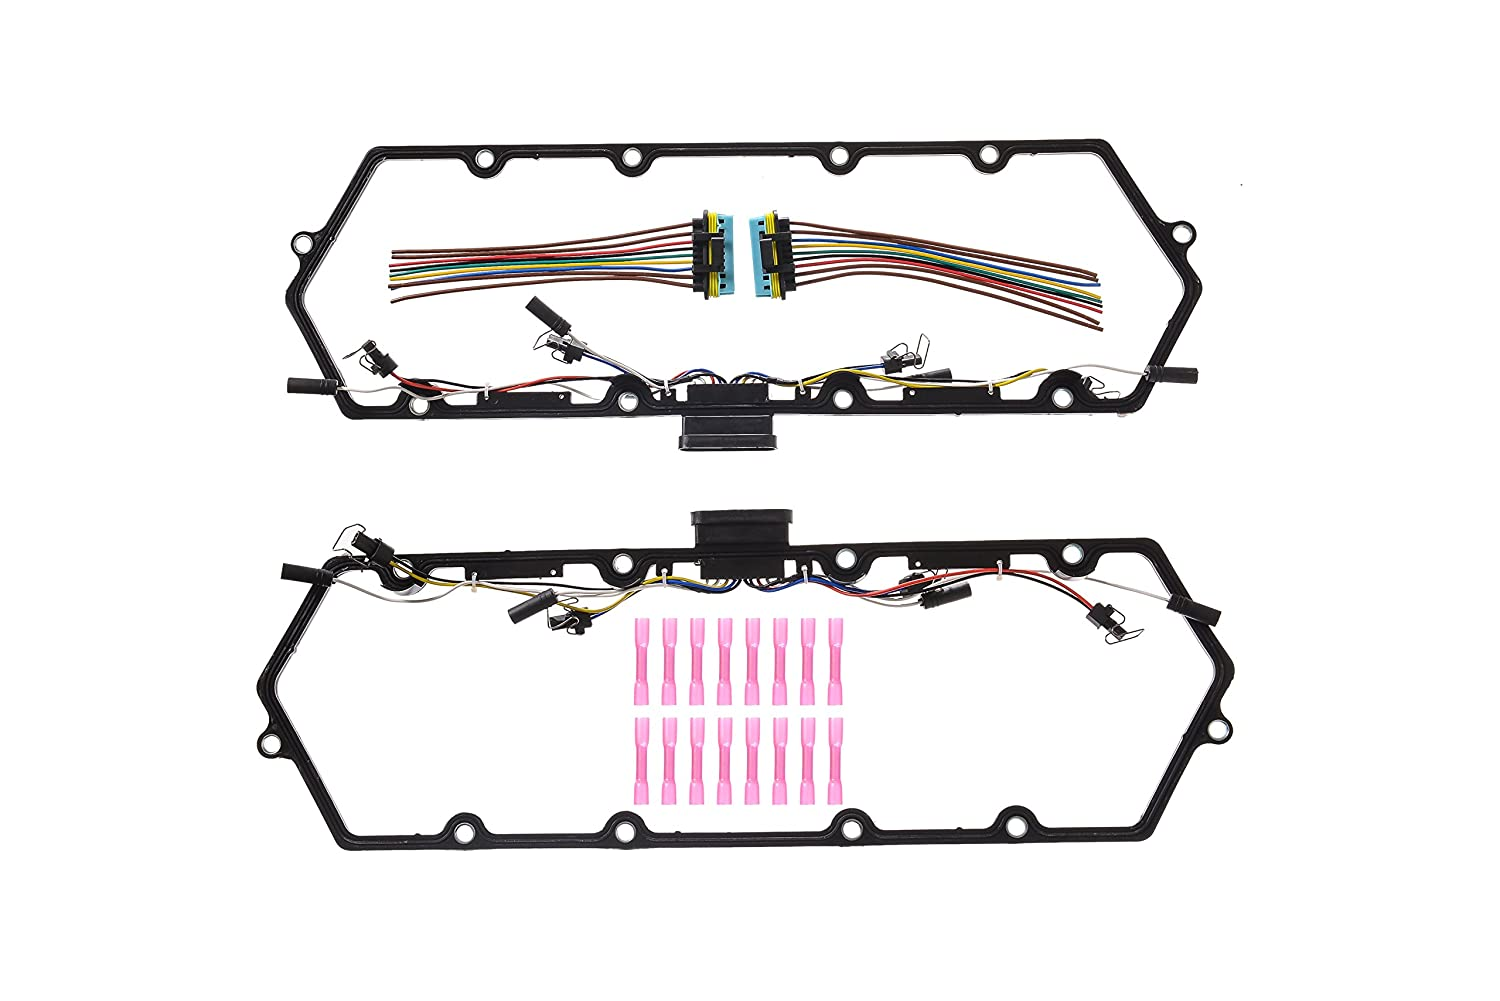 Ford 1997 2003 73lpower Stroke Valve Cover Gasket Kit With Fuel 7 3 Glow Plug Wiring Harness Injector